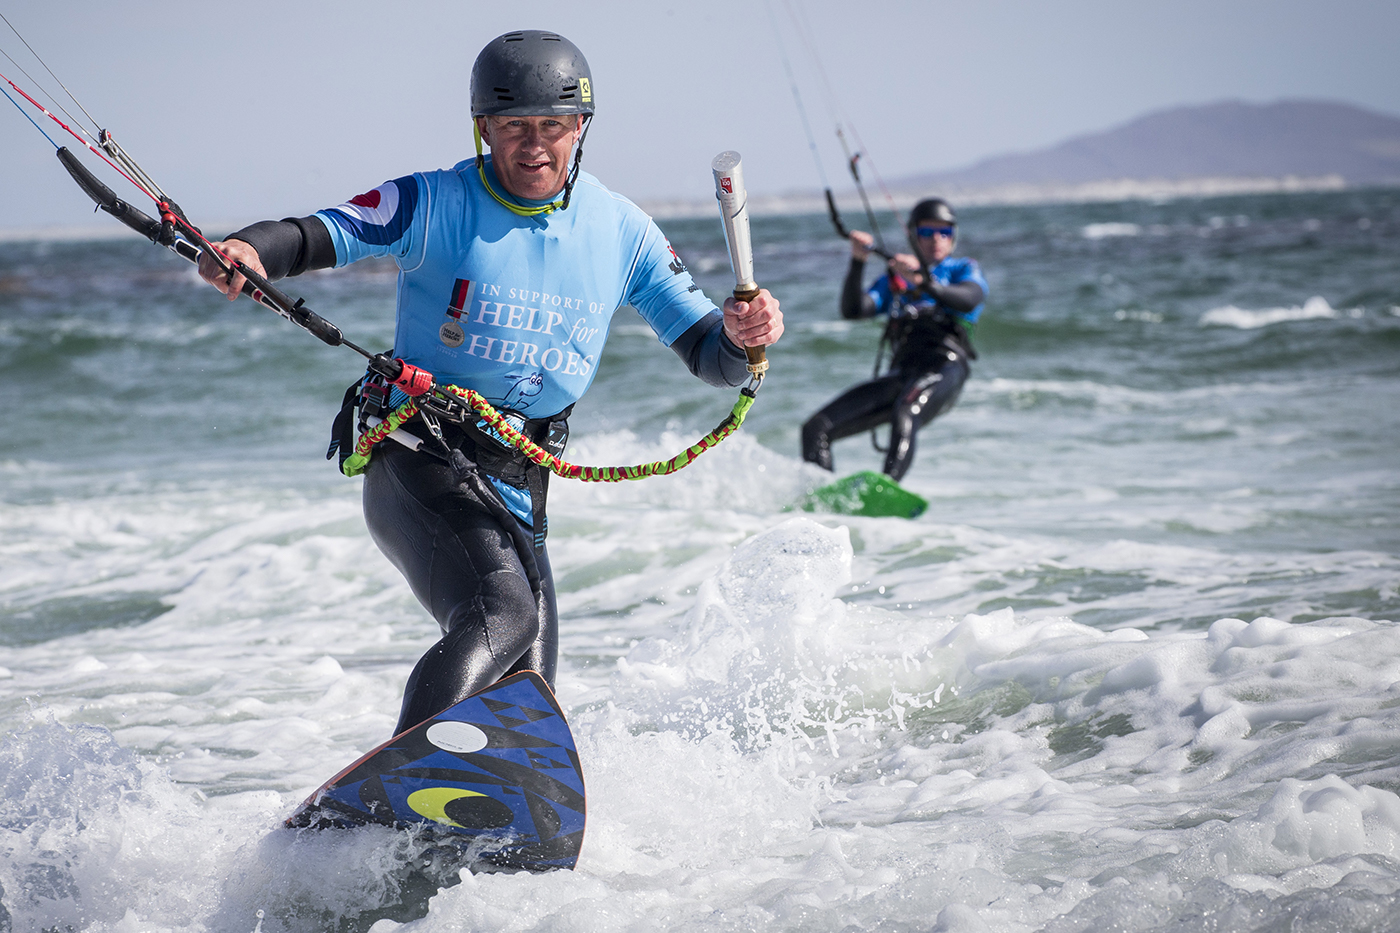 Royal Air Force Takes 100th Birthday Celebrations Kitesurfing in the Outer Hebrides